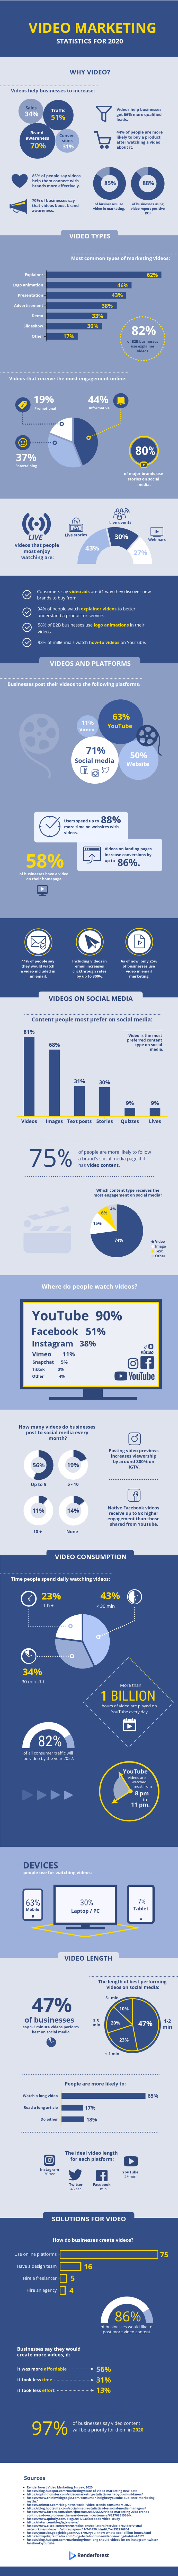 Video usage stats 2020